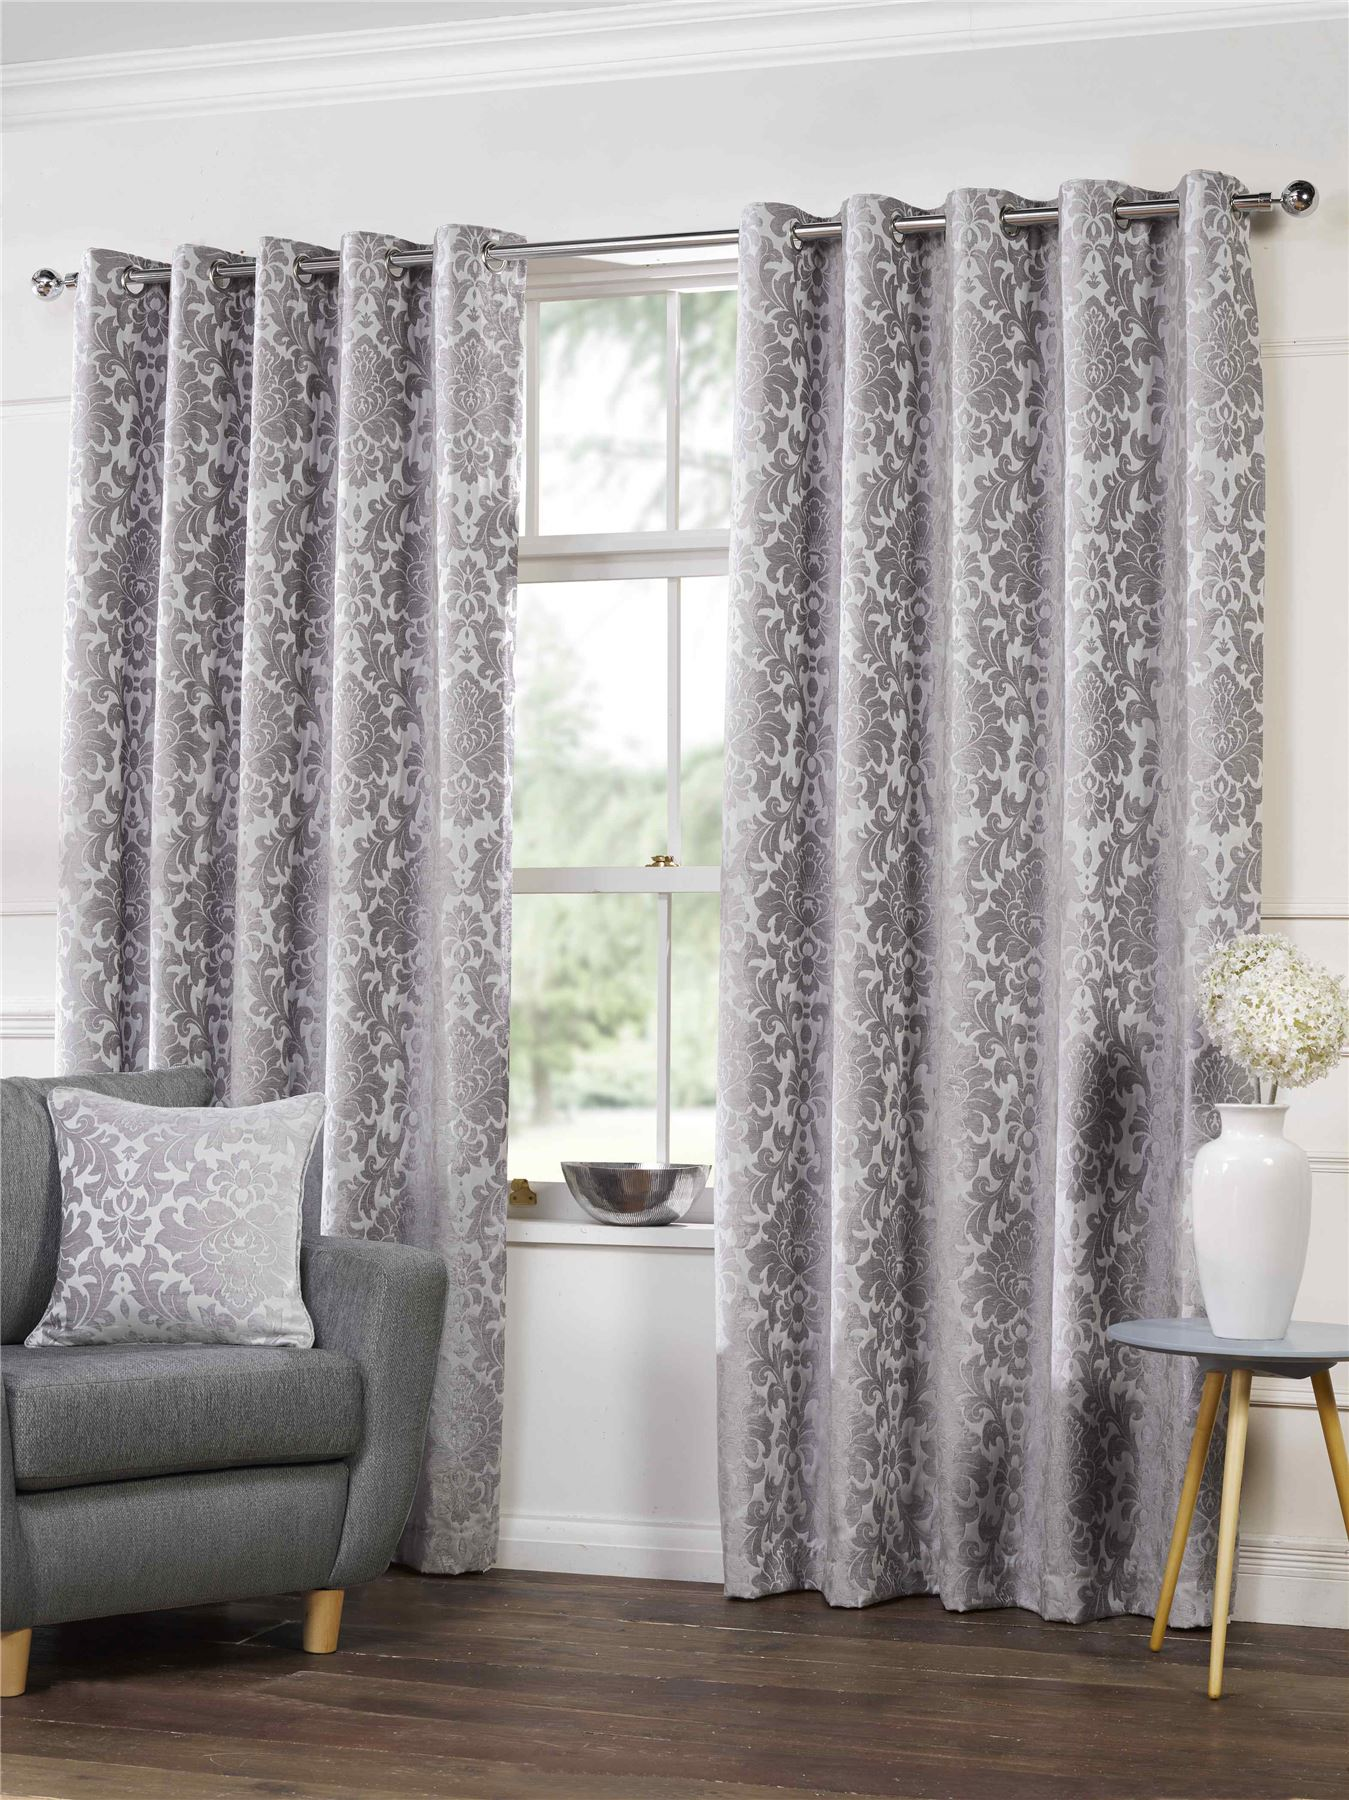 SILVER GREY CHENILLE DAMASK LINED RING TOP EYELET CURTAINS ...